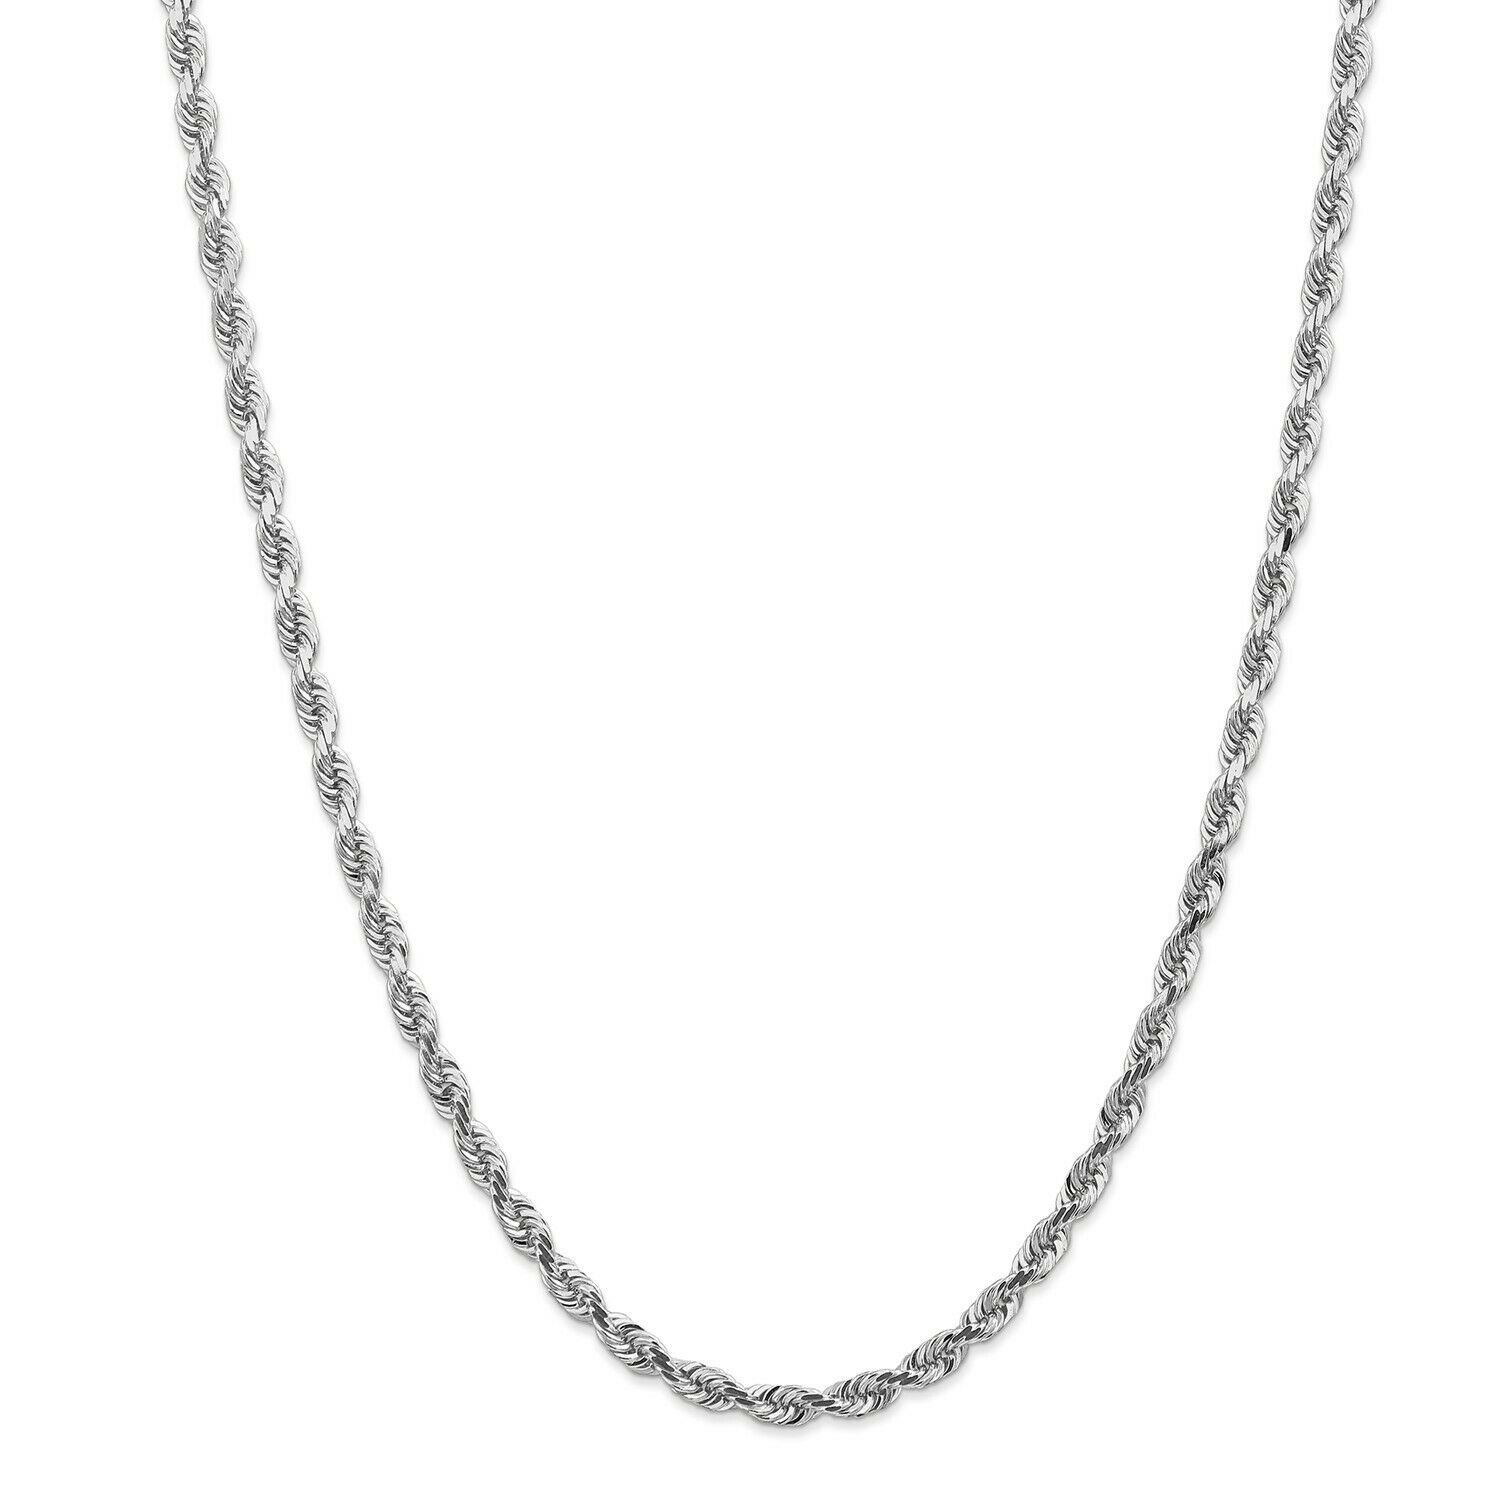 14k White gold 4.5mm Diamond Cut Quadruple Rope Chain w  Lobster Clasp 20  - 30